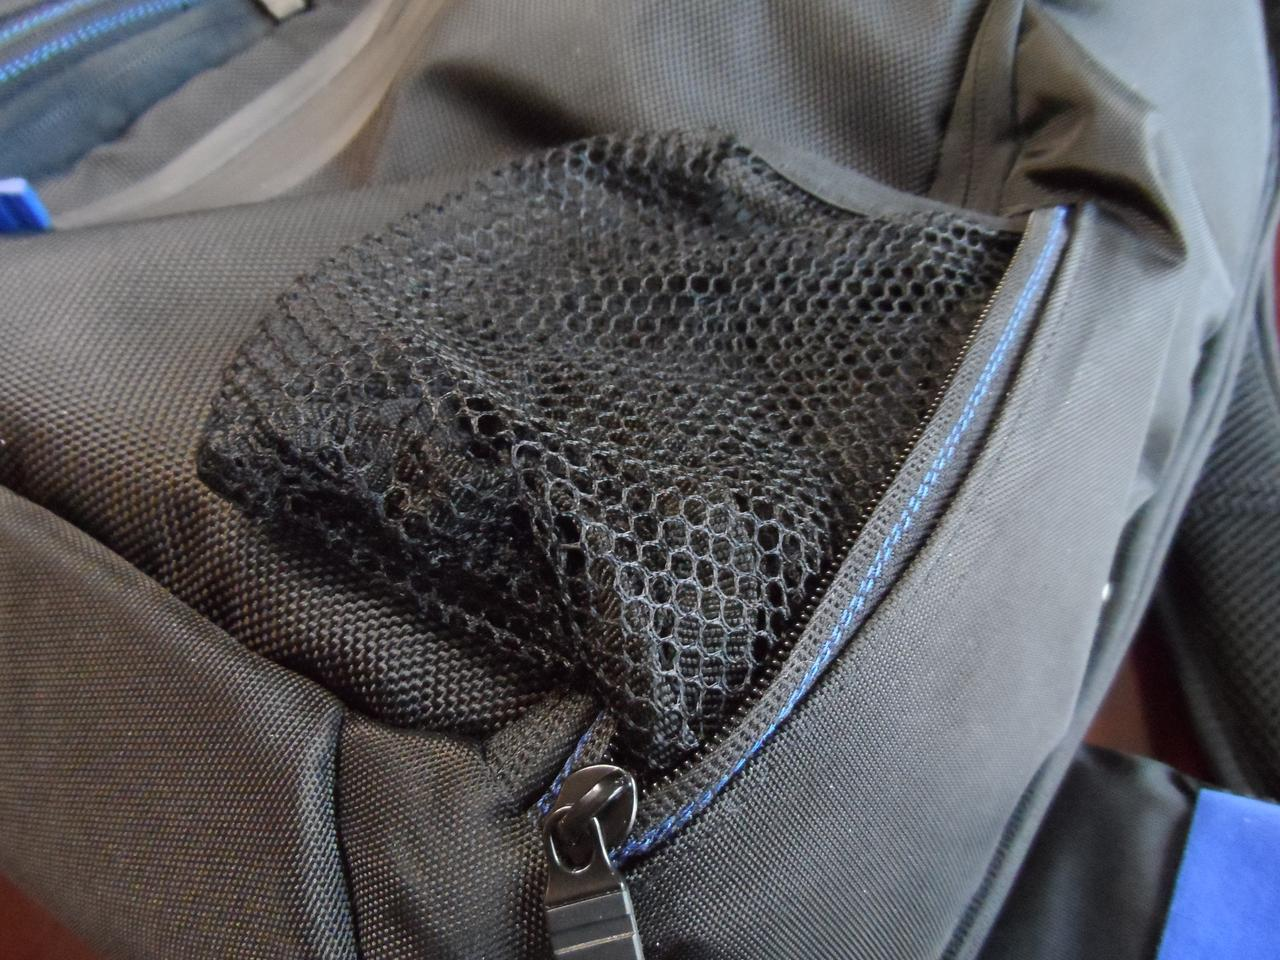 One of the front pouches features a pull-out drink holder